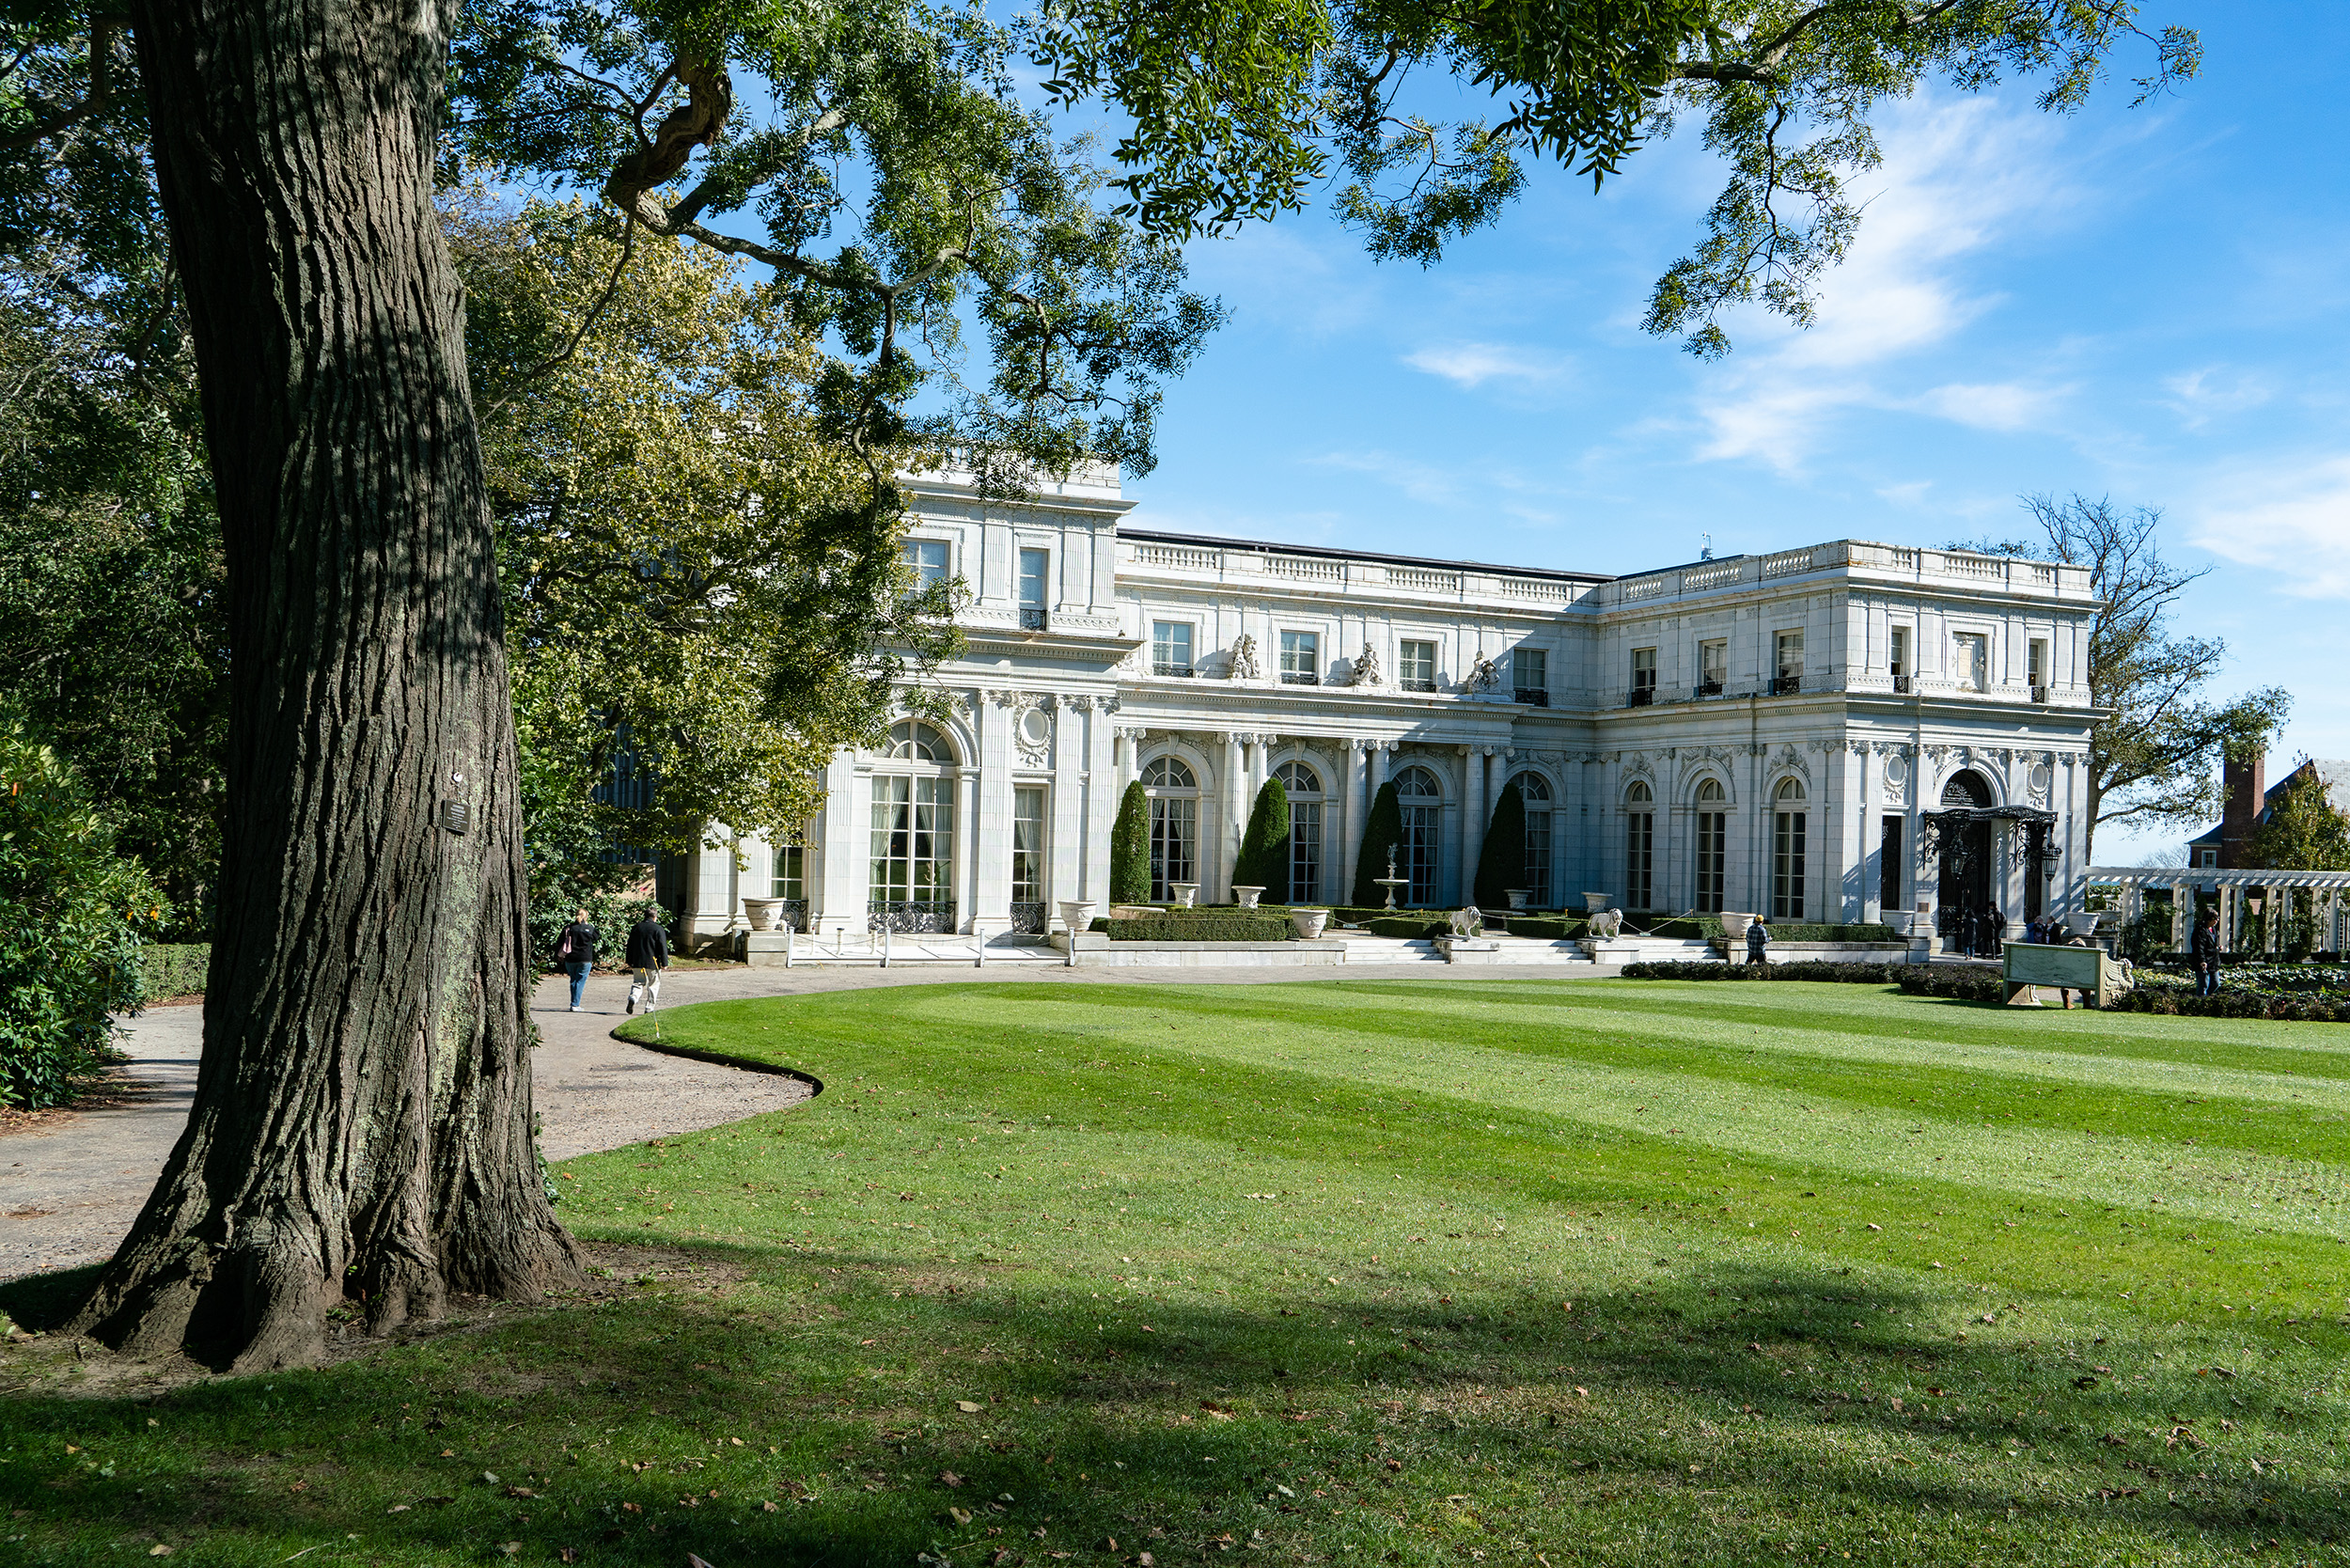 #rosecliff, #newport, #white, #architecture, #greatgatsby, #gatsby, #mansions, #historic, #rhodeisland, #travel